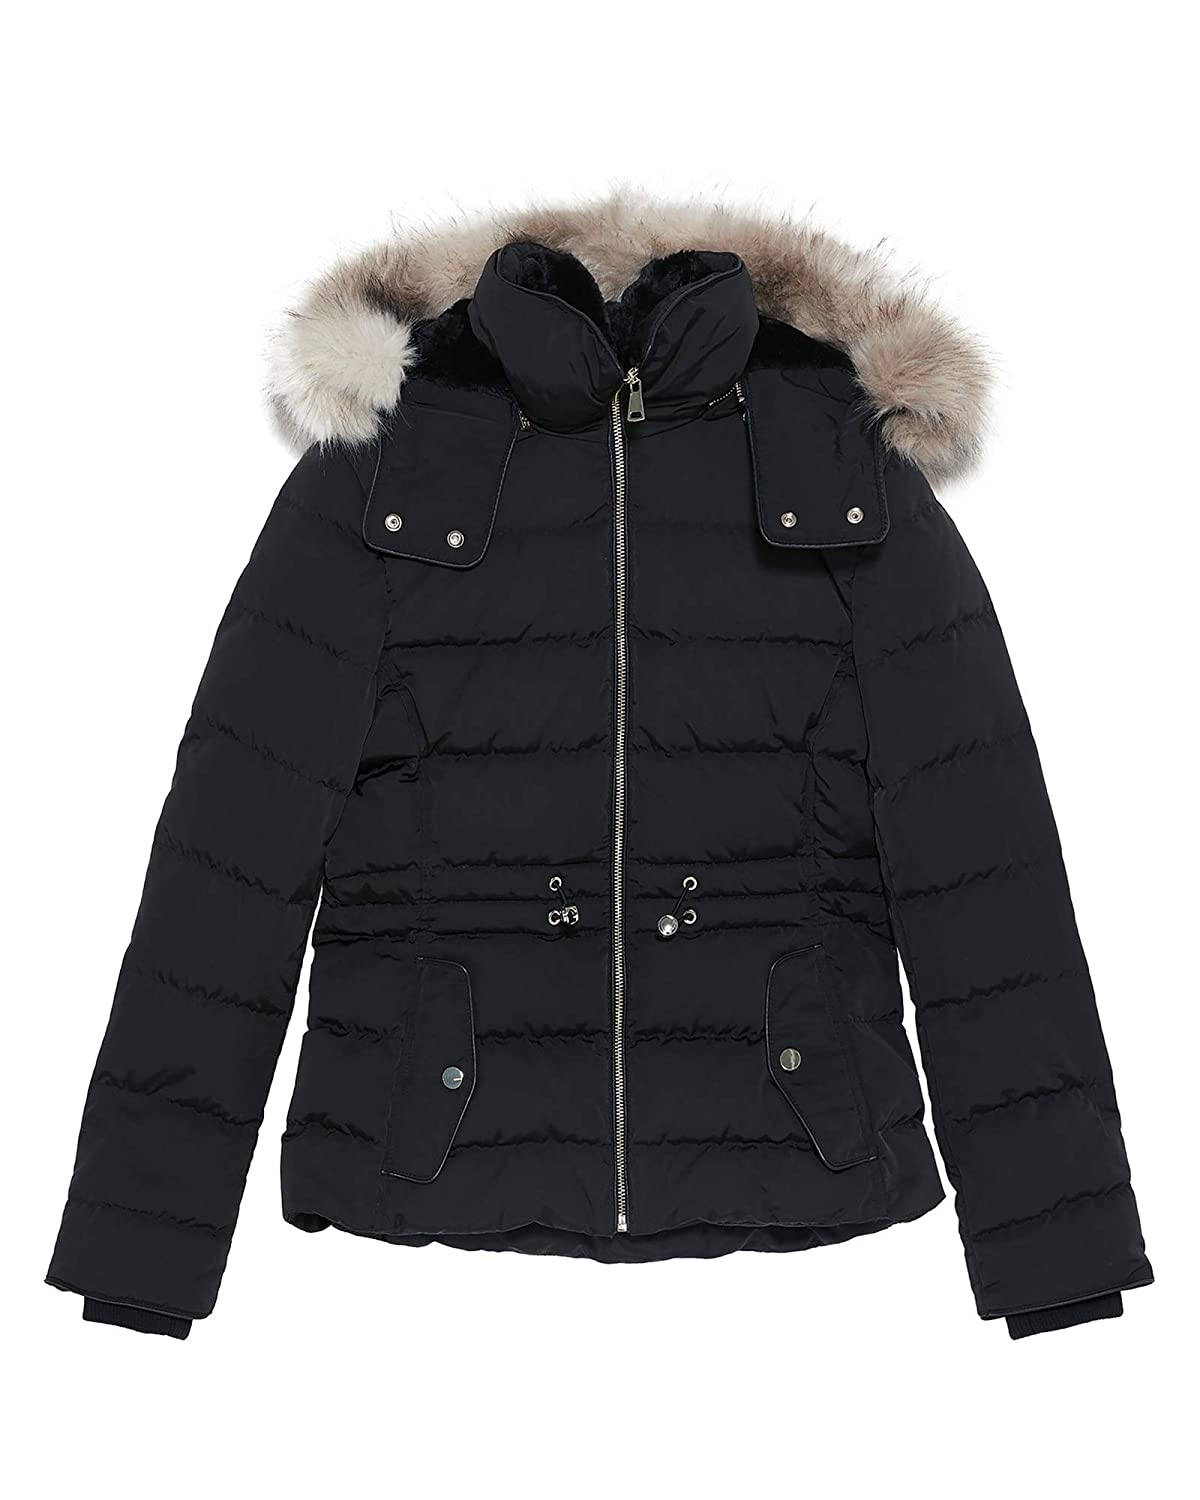 8996b10c1 Amazon.com: Zara Women Hooded Down Puffer Jacket 0518/047 Black ...